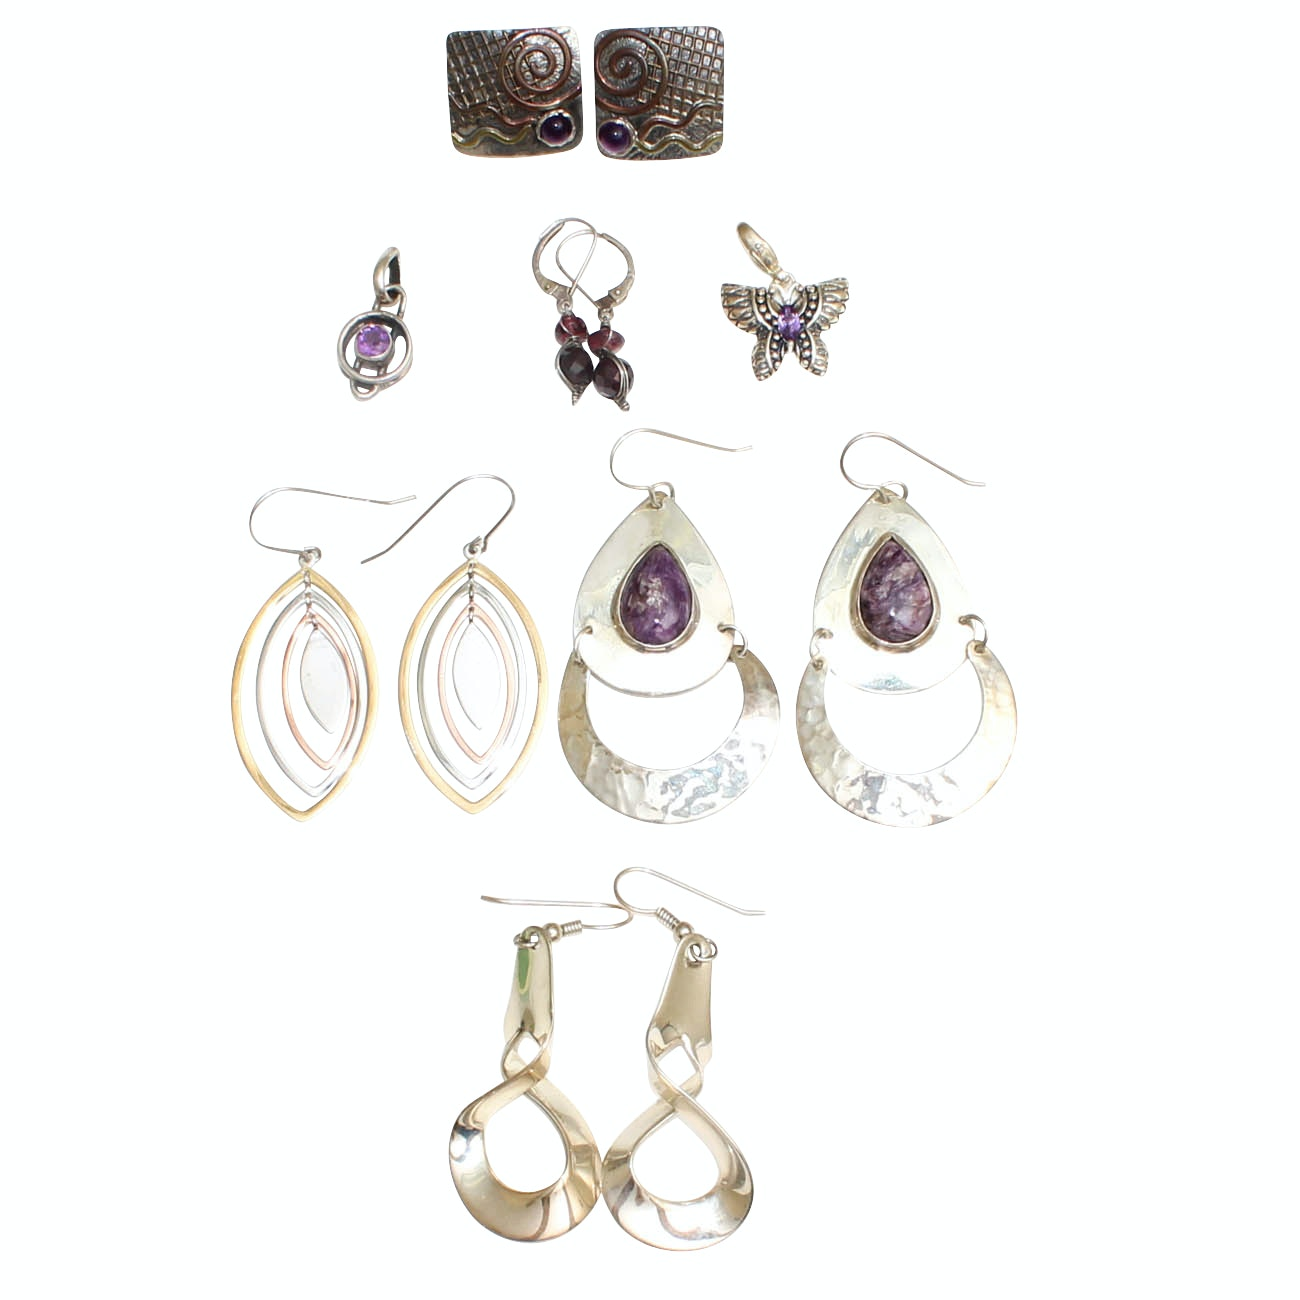 900 and Sterling Silver Jewelry with Amethyst, Garnet, and Charoite